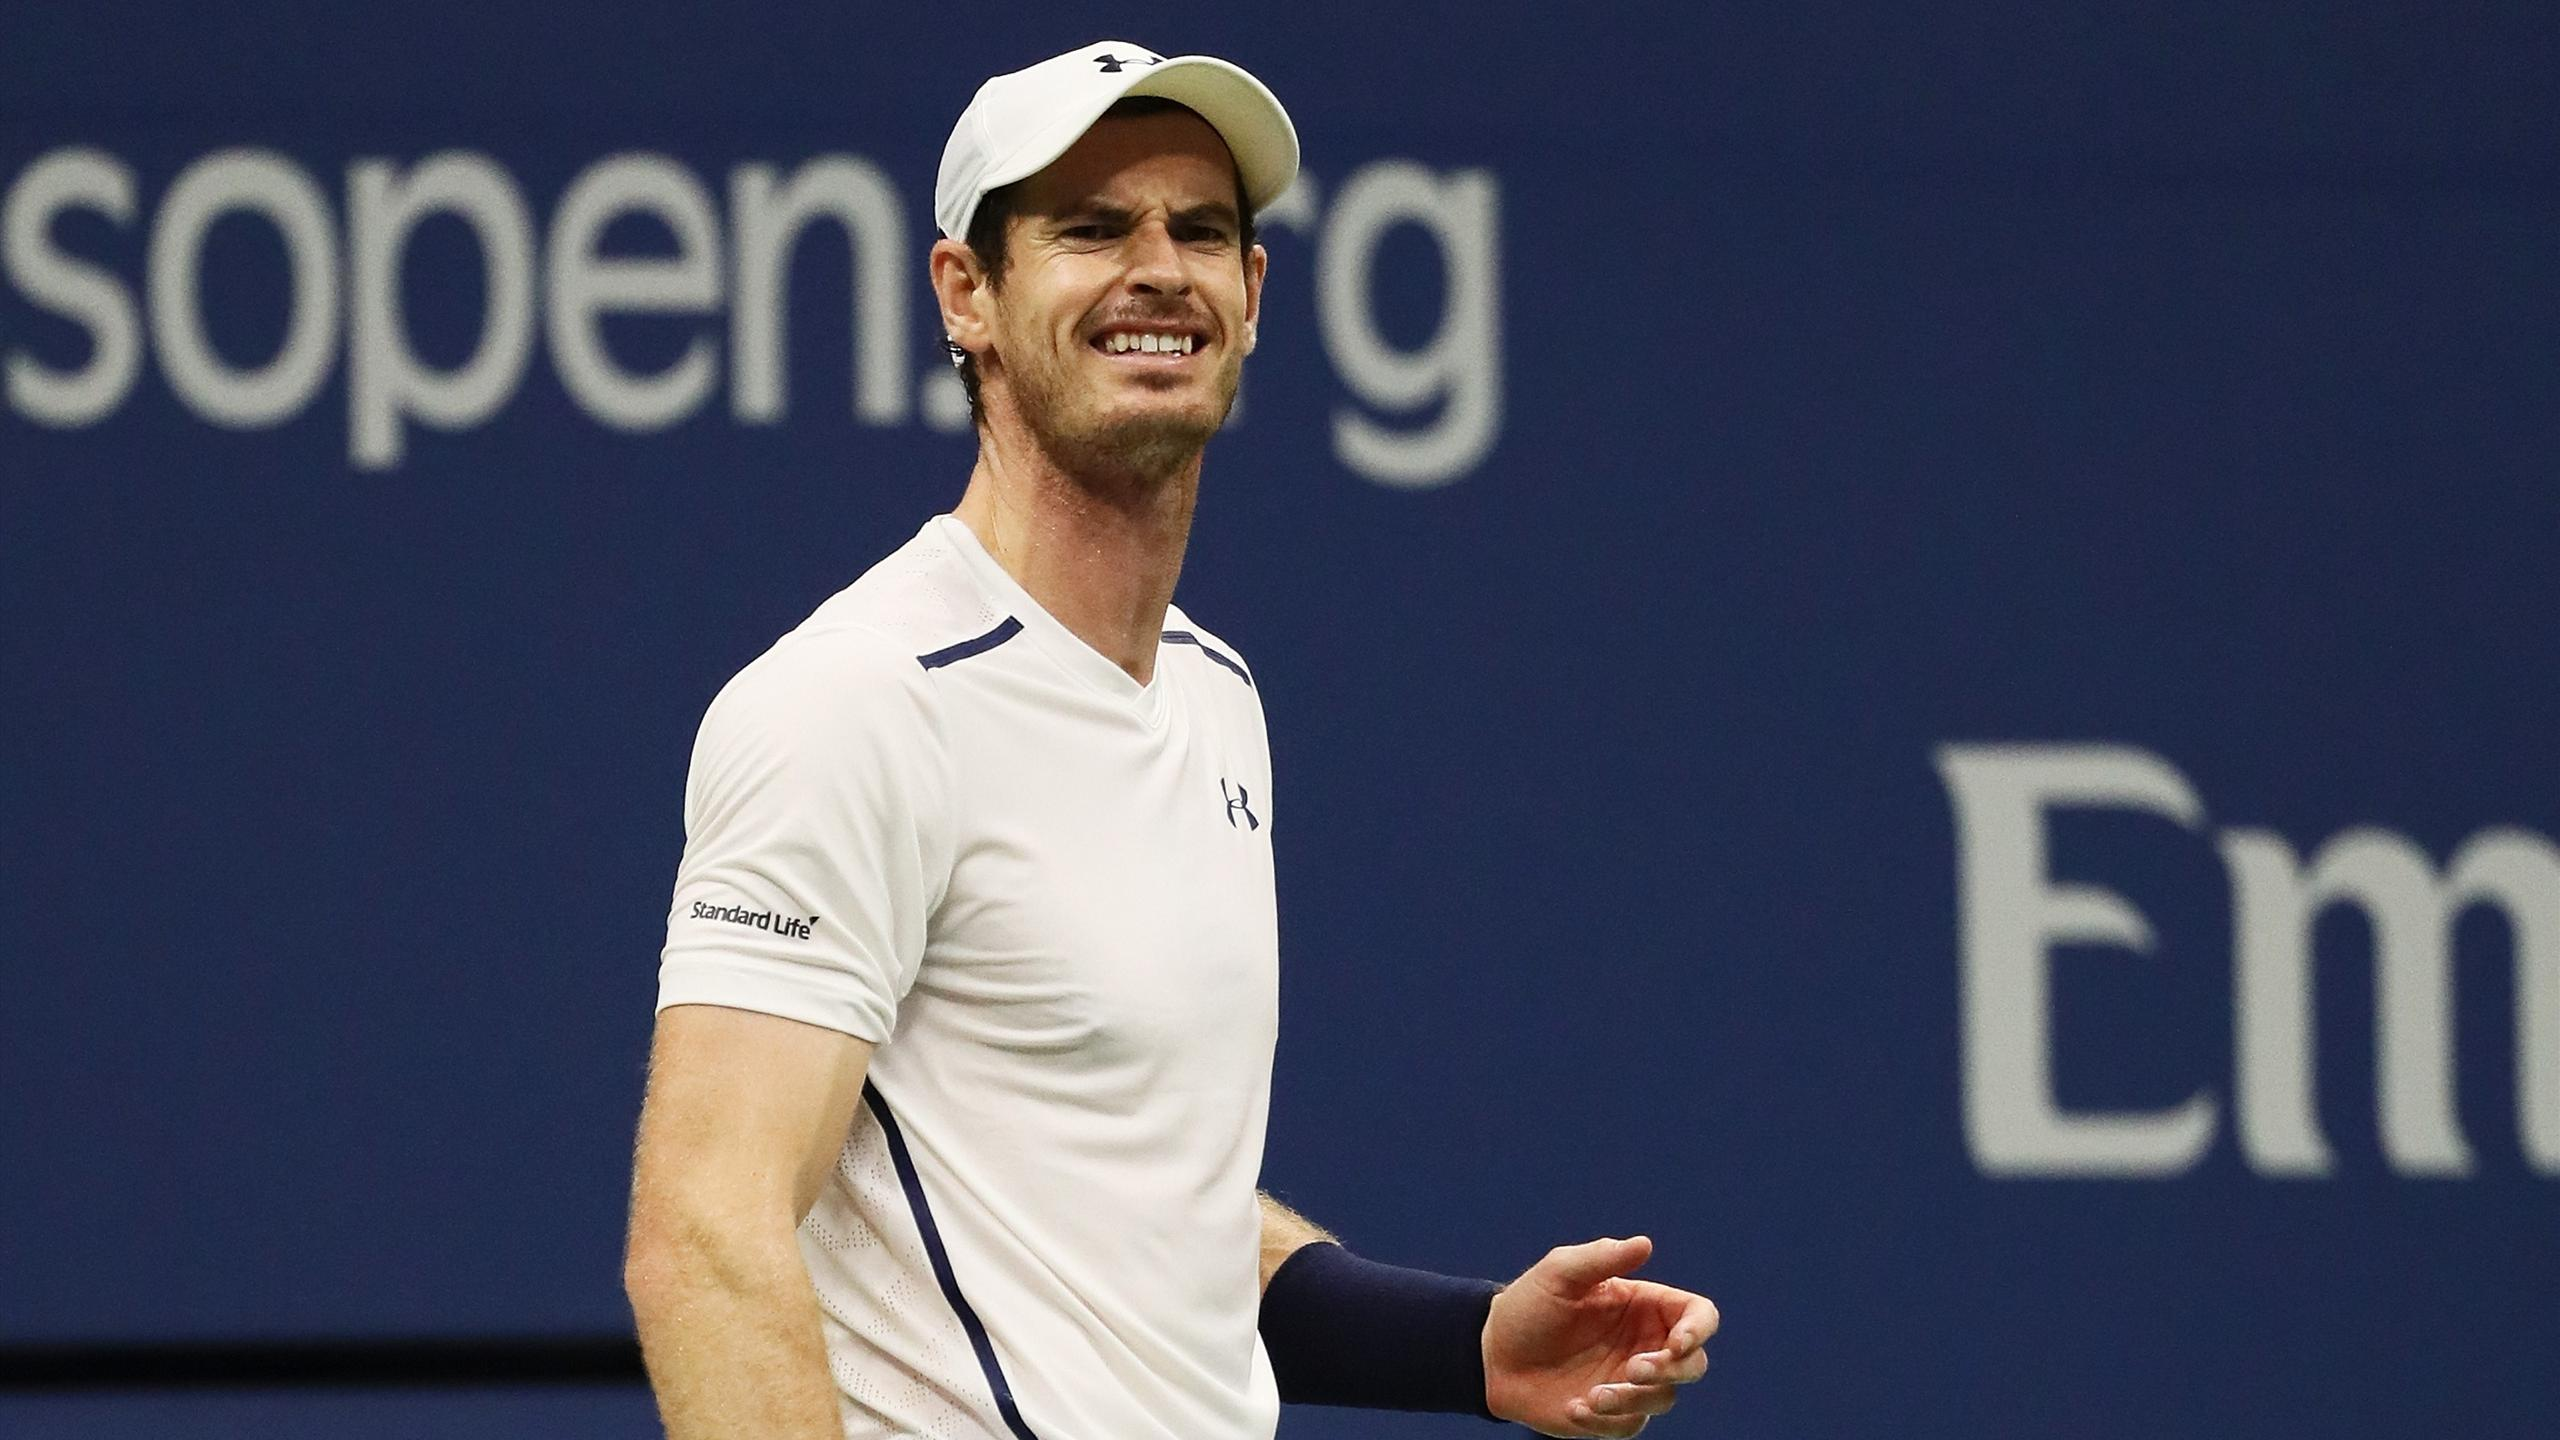 Andy Murray, vainqueur facile de Marcel Granollers au 2e tour de l'US Open